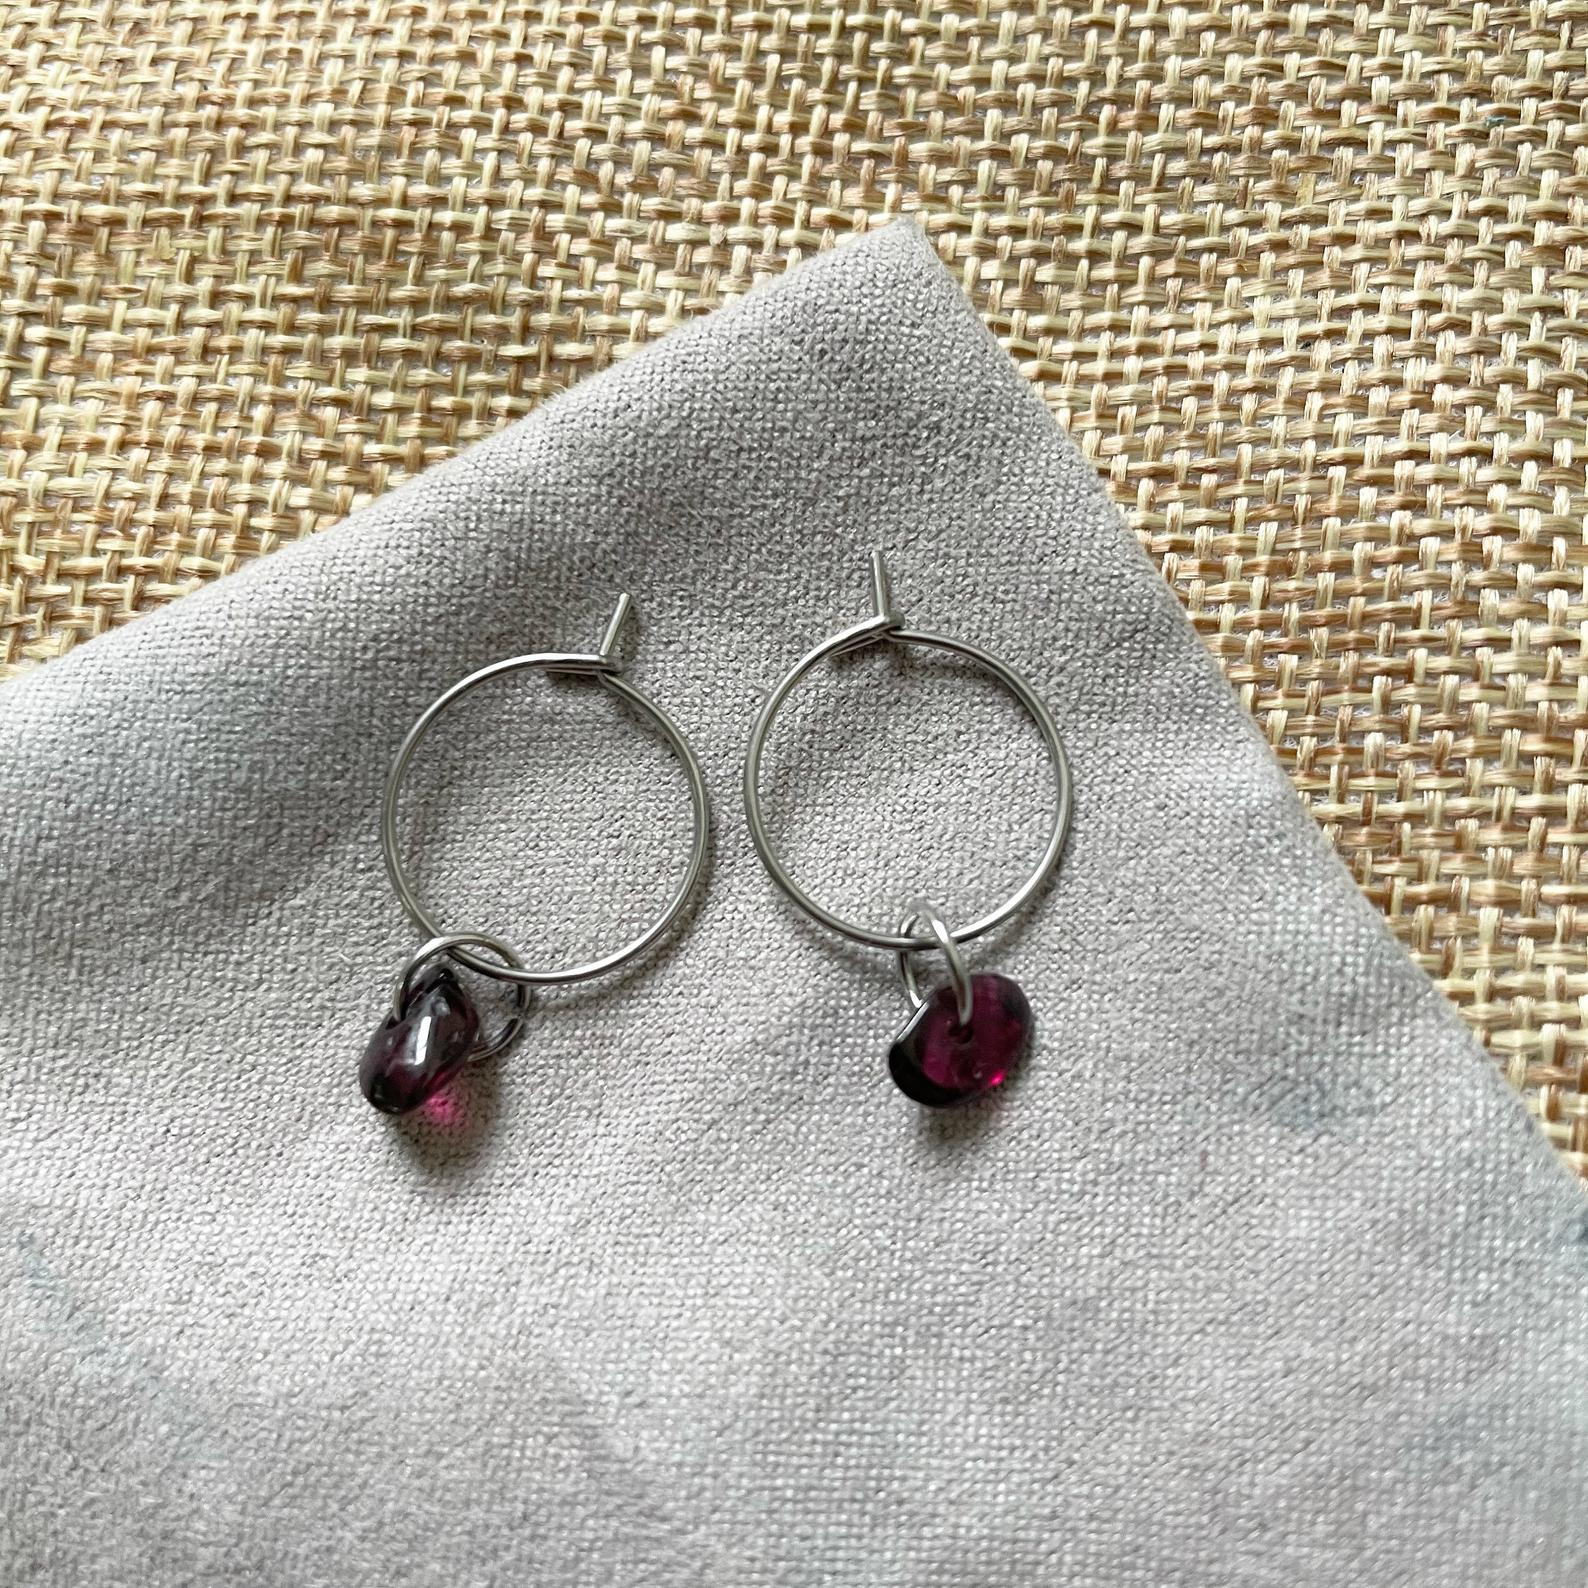 Garnet mini hoop earrings, 25$